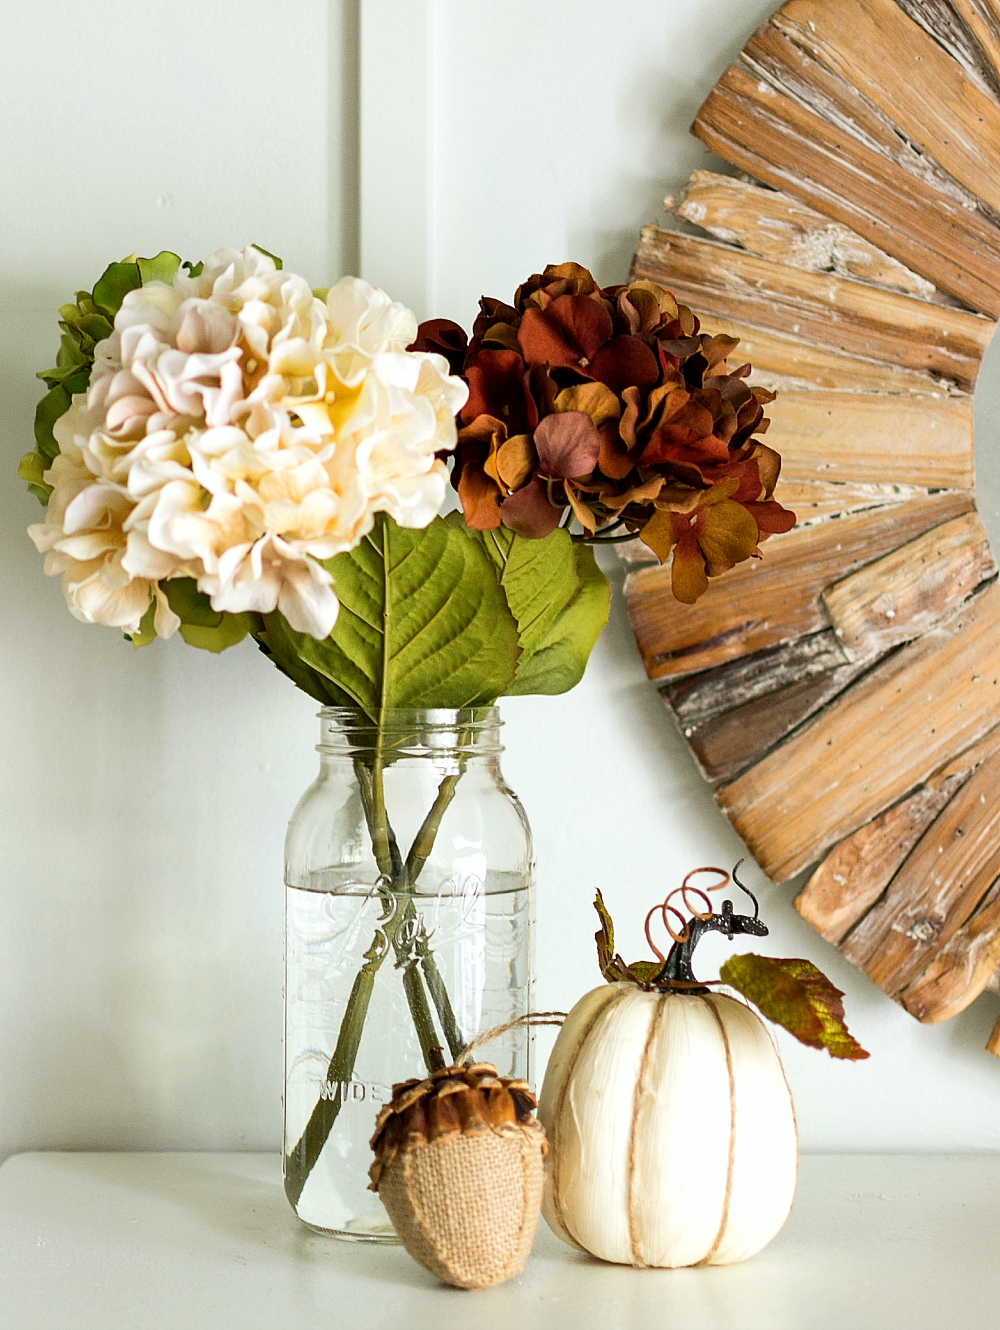 Fall Decorating Ideas: Hydrangeas and Pumpkins in Mason Jar Vase